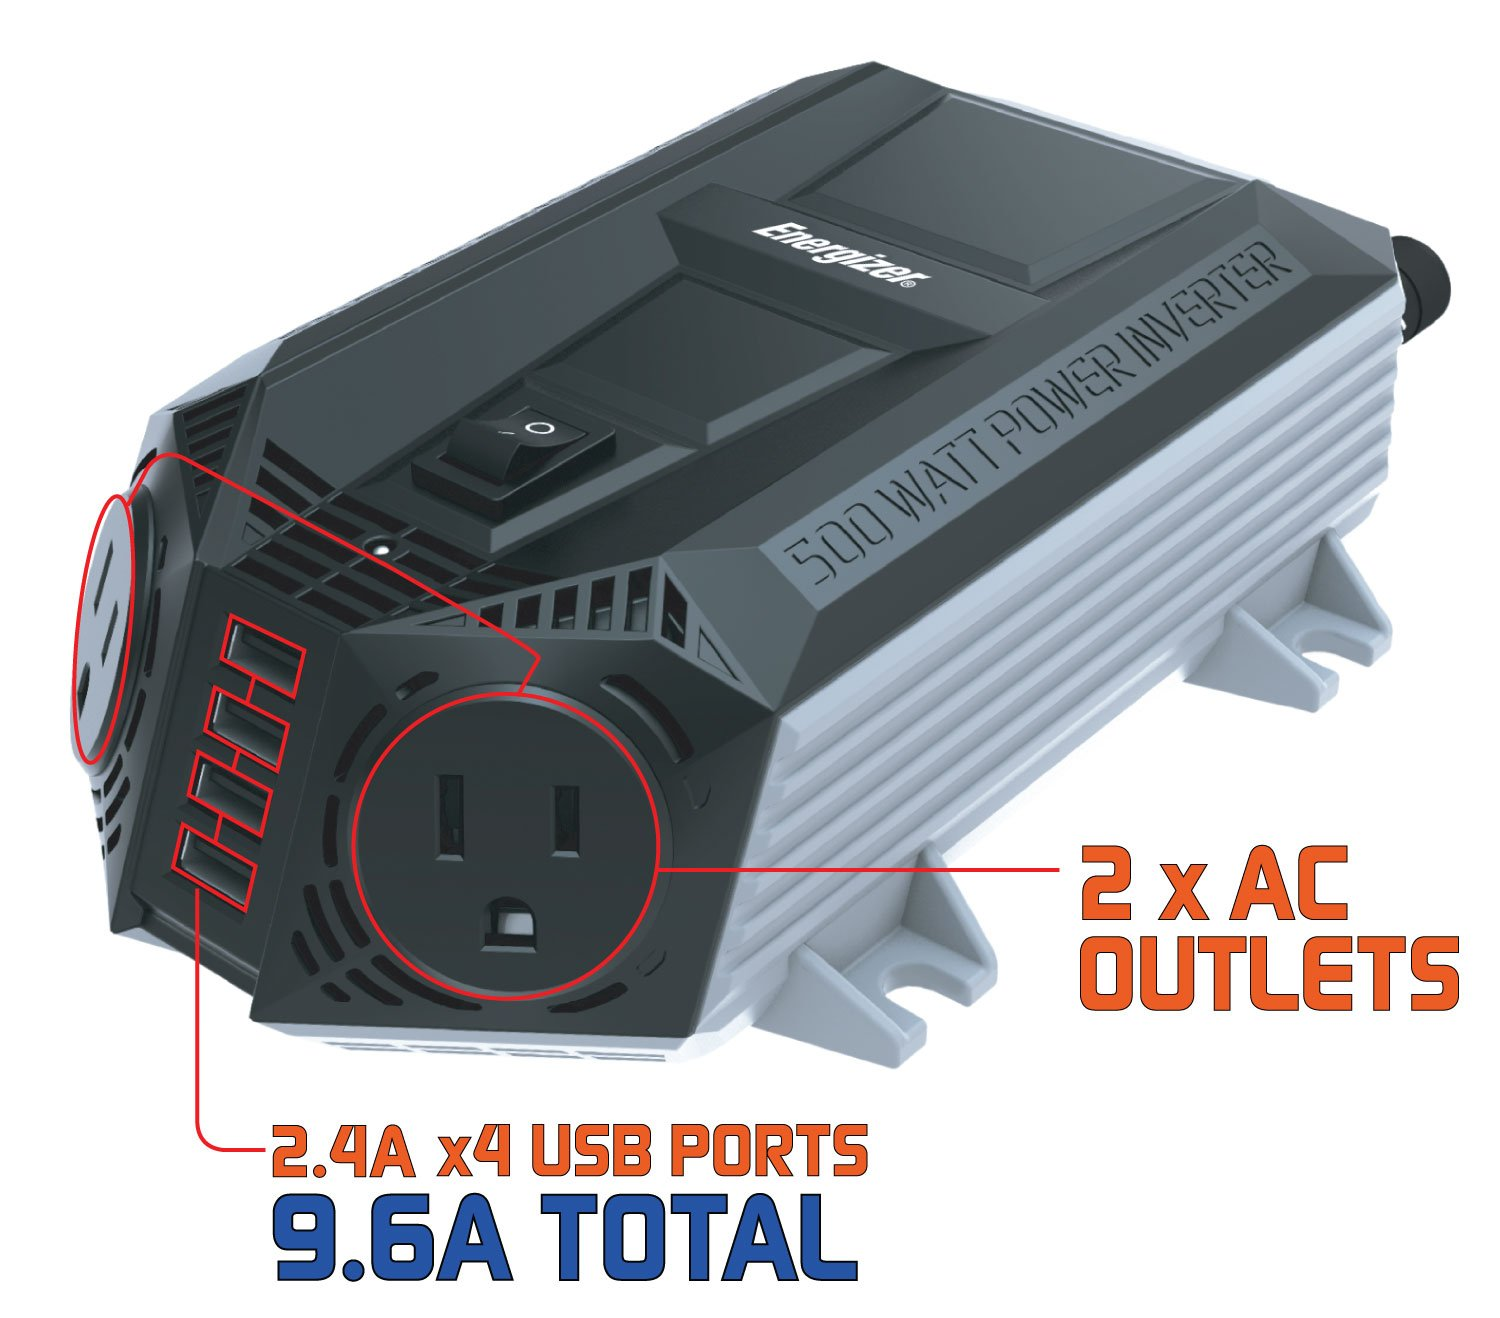 ENERGIZER 500 Watt Power Inverter 12V DC to AC + 4 x 2.4A USB Charging Ports Total 9.6A by Energizer (Image #4)